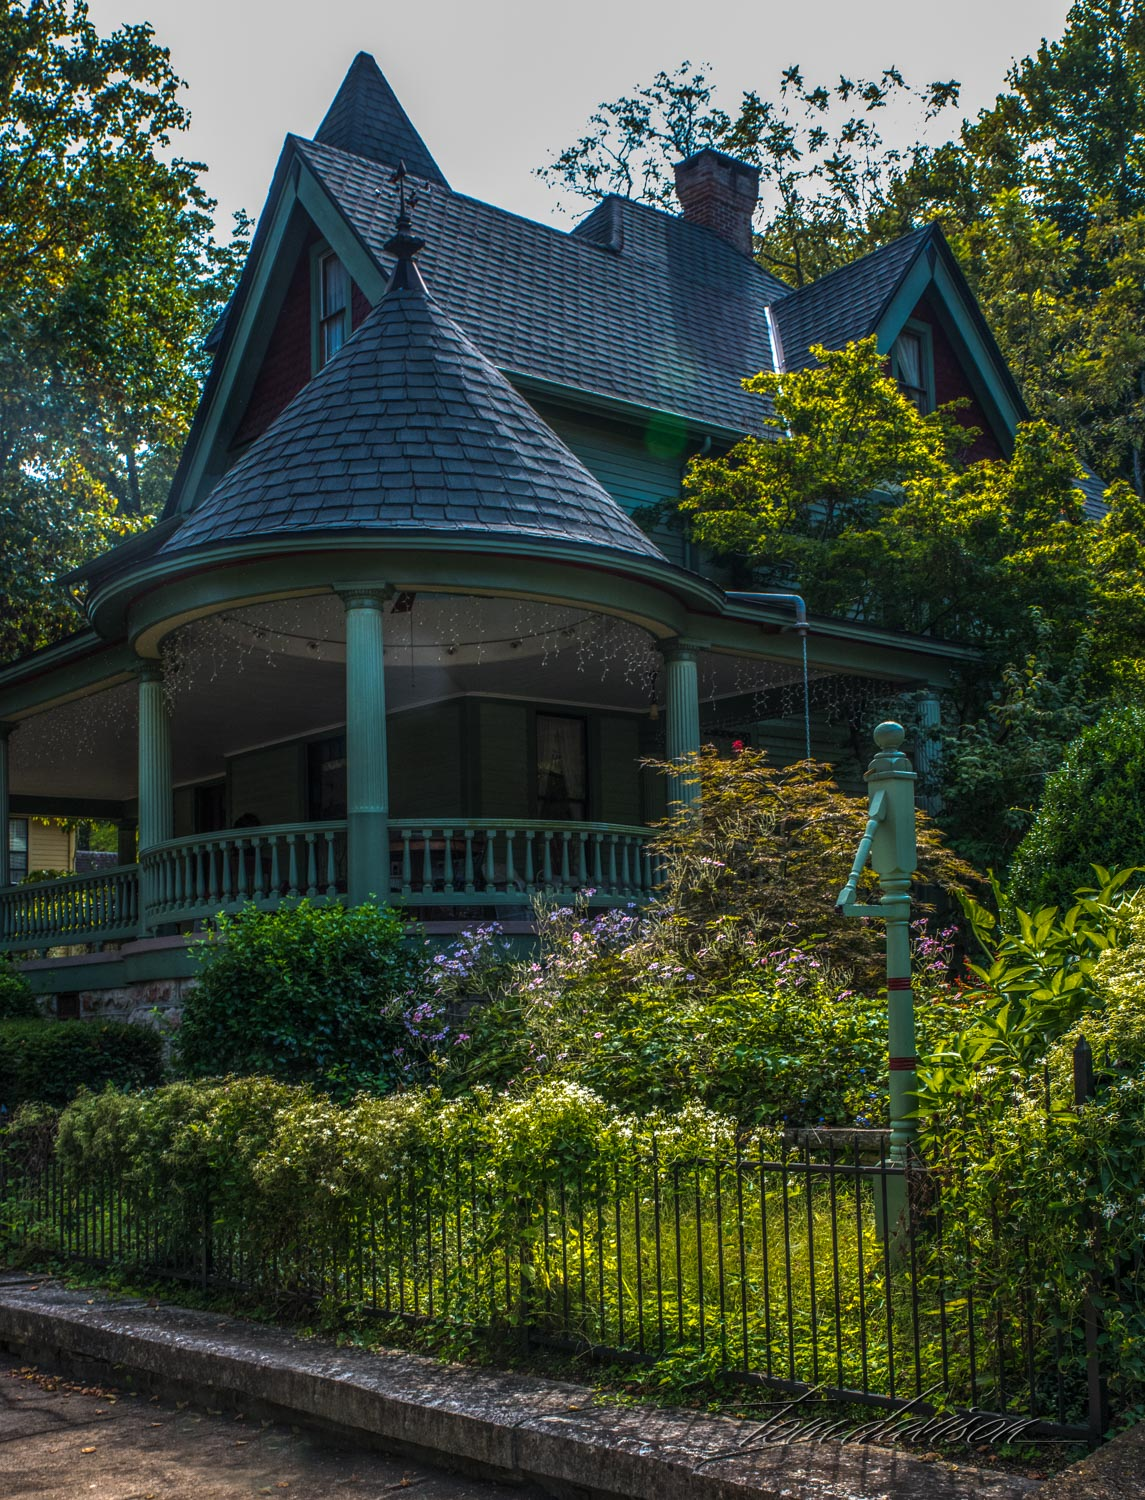 A well maintained Victorian style home.